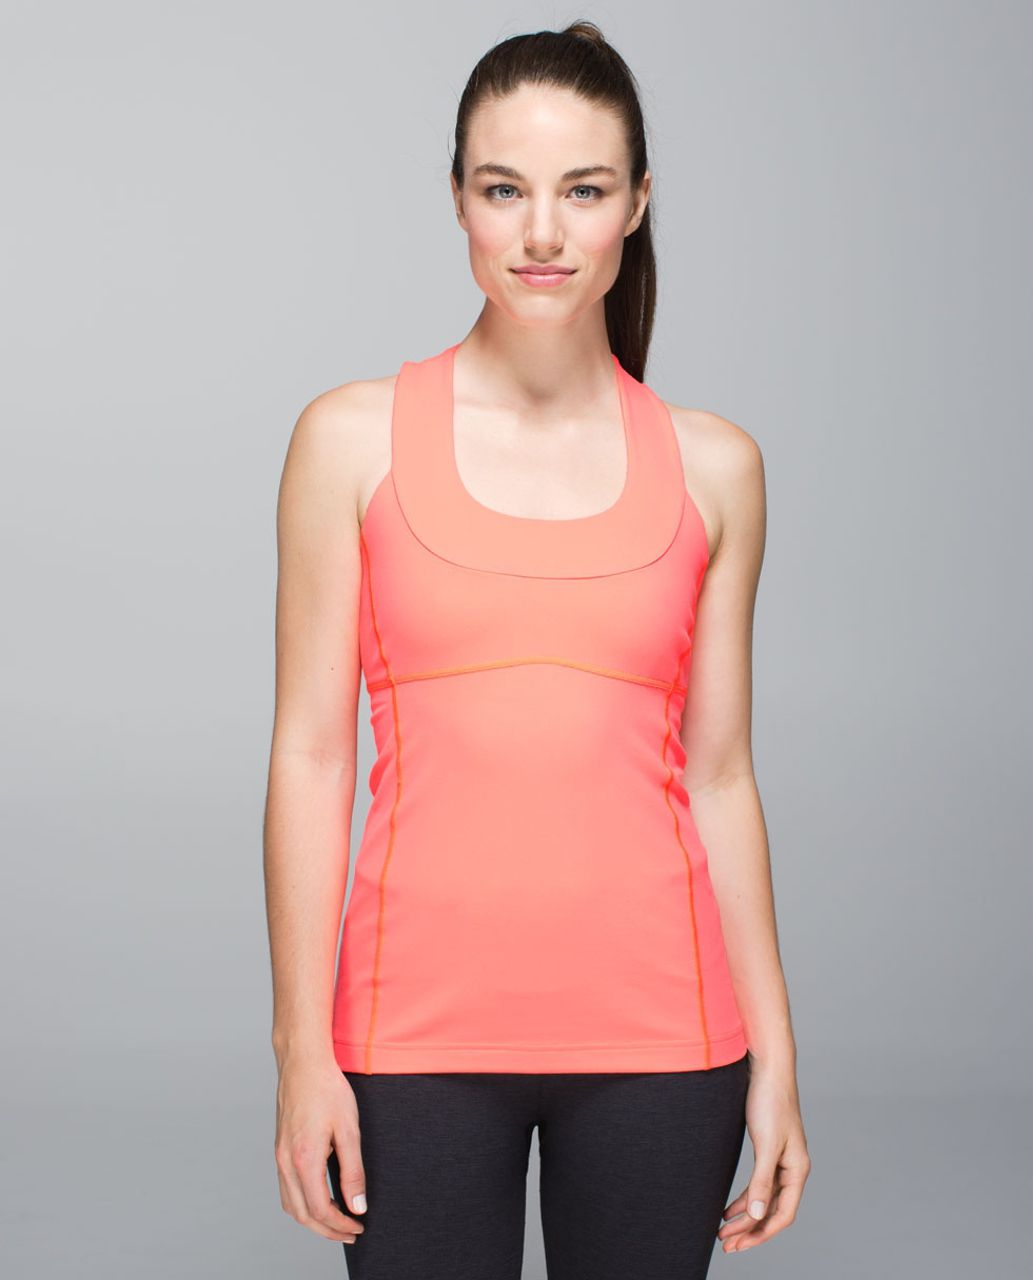 Lululemon Scoop Neck Tank *Luon - Very Light Flare